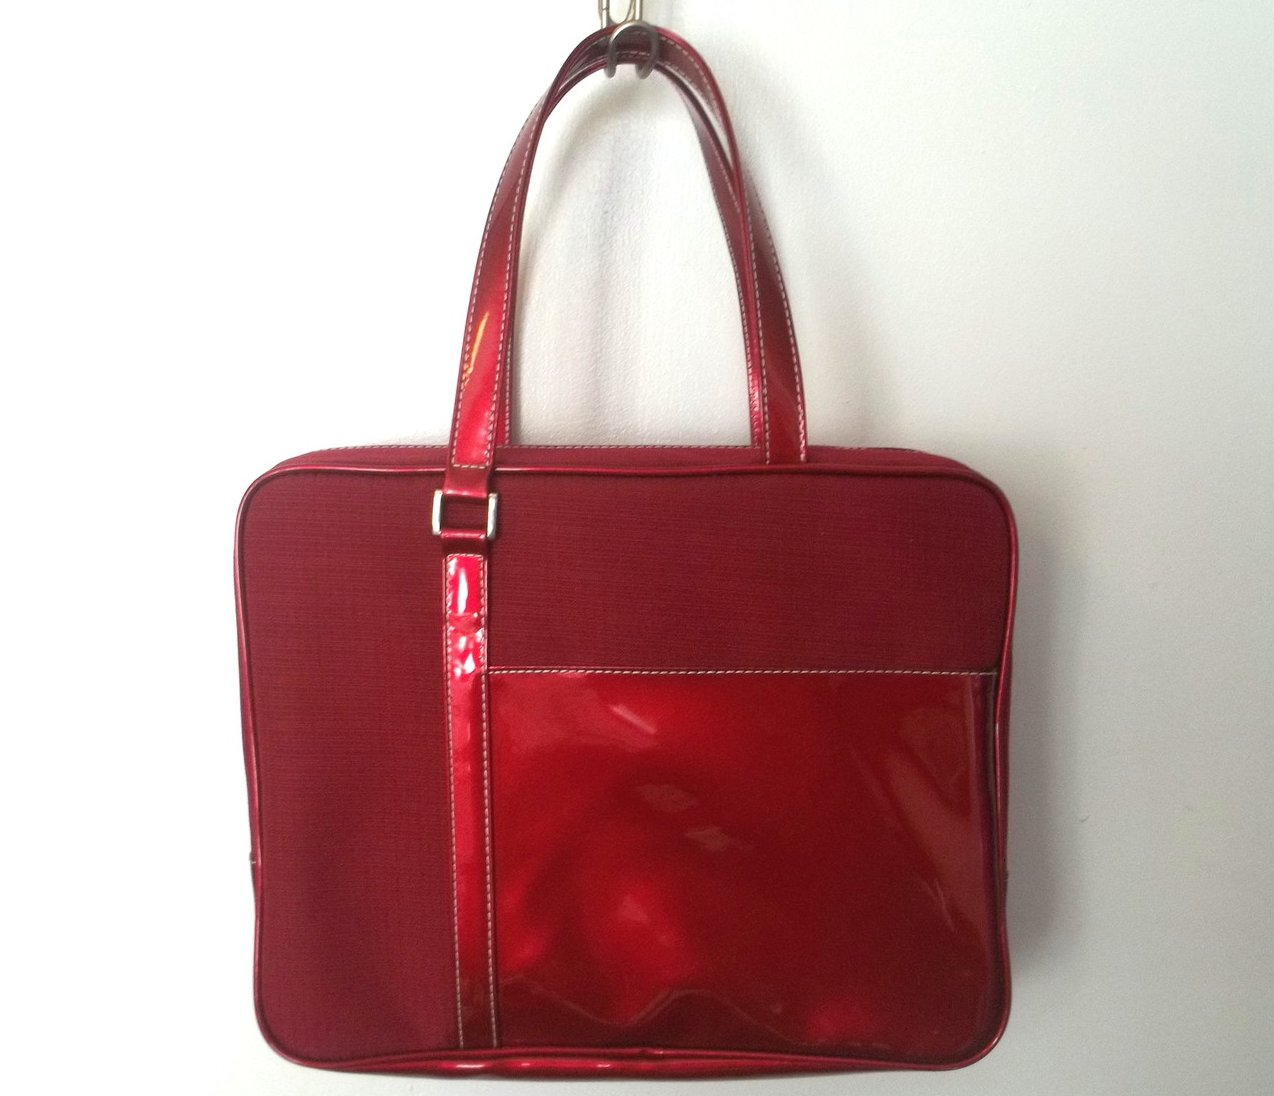 Estee Lauder Burgundy Red Travel Cosmetic Case Tote